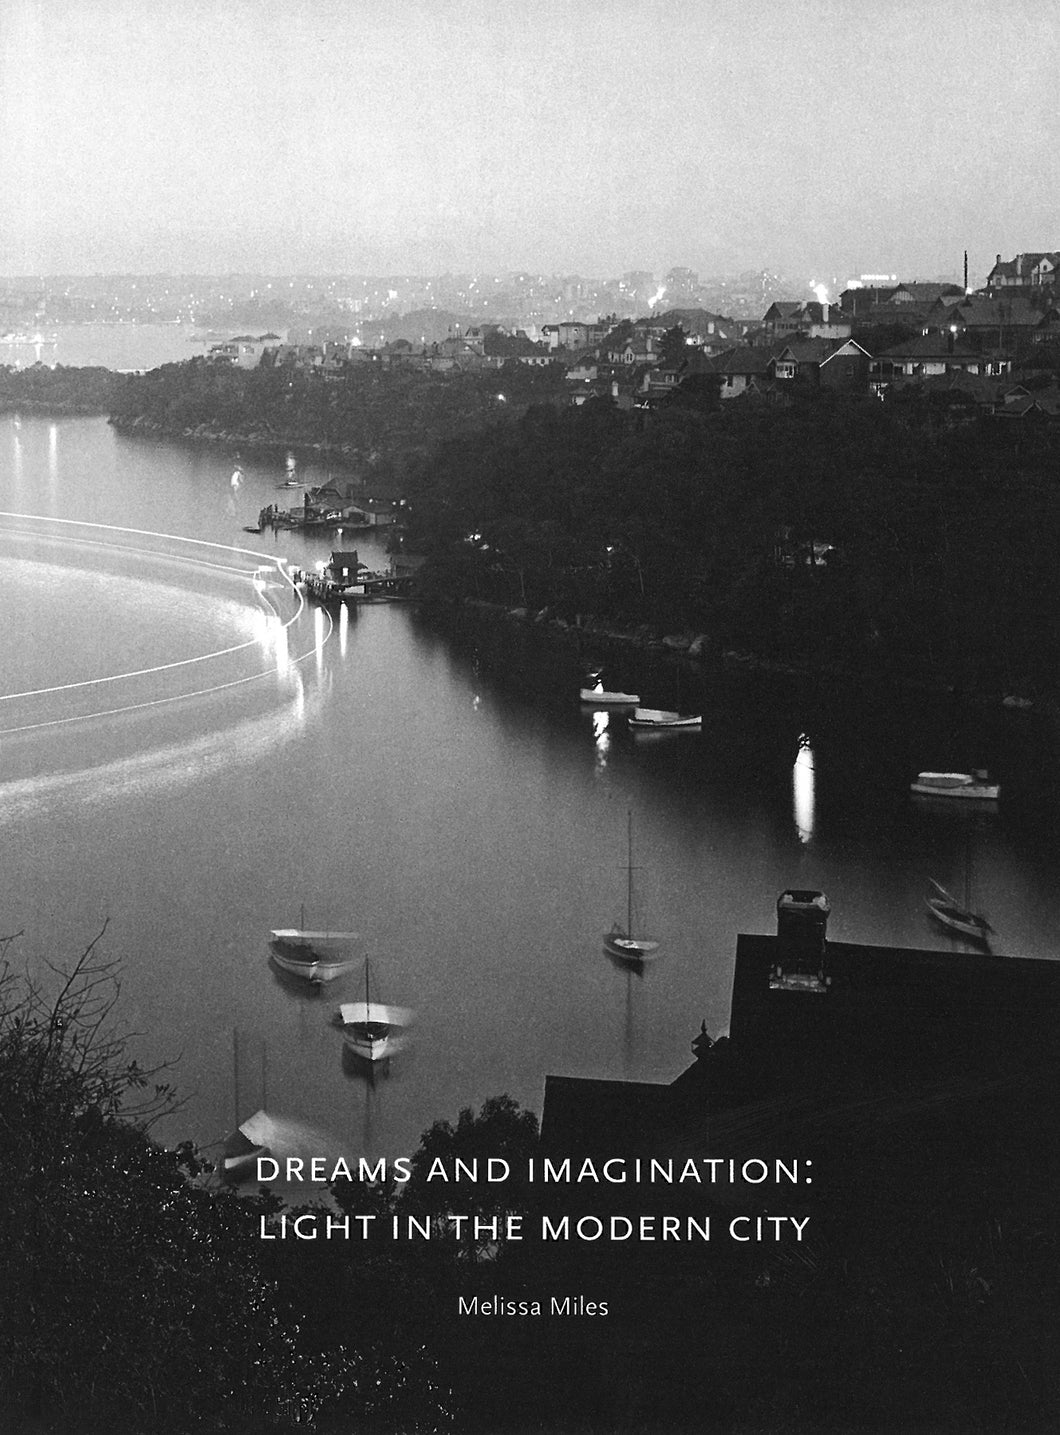 Dreams and Imagination: Light in the Modern city by Melissa Miles